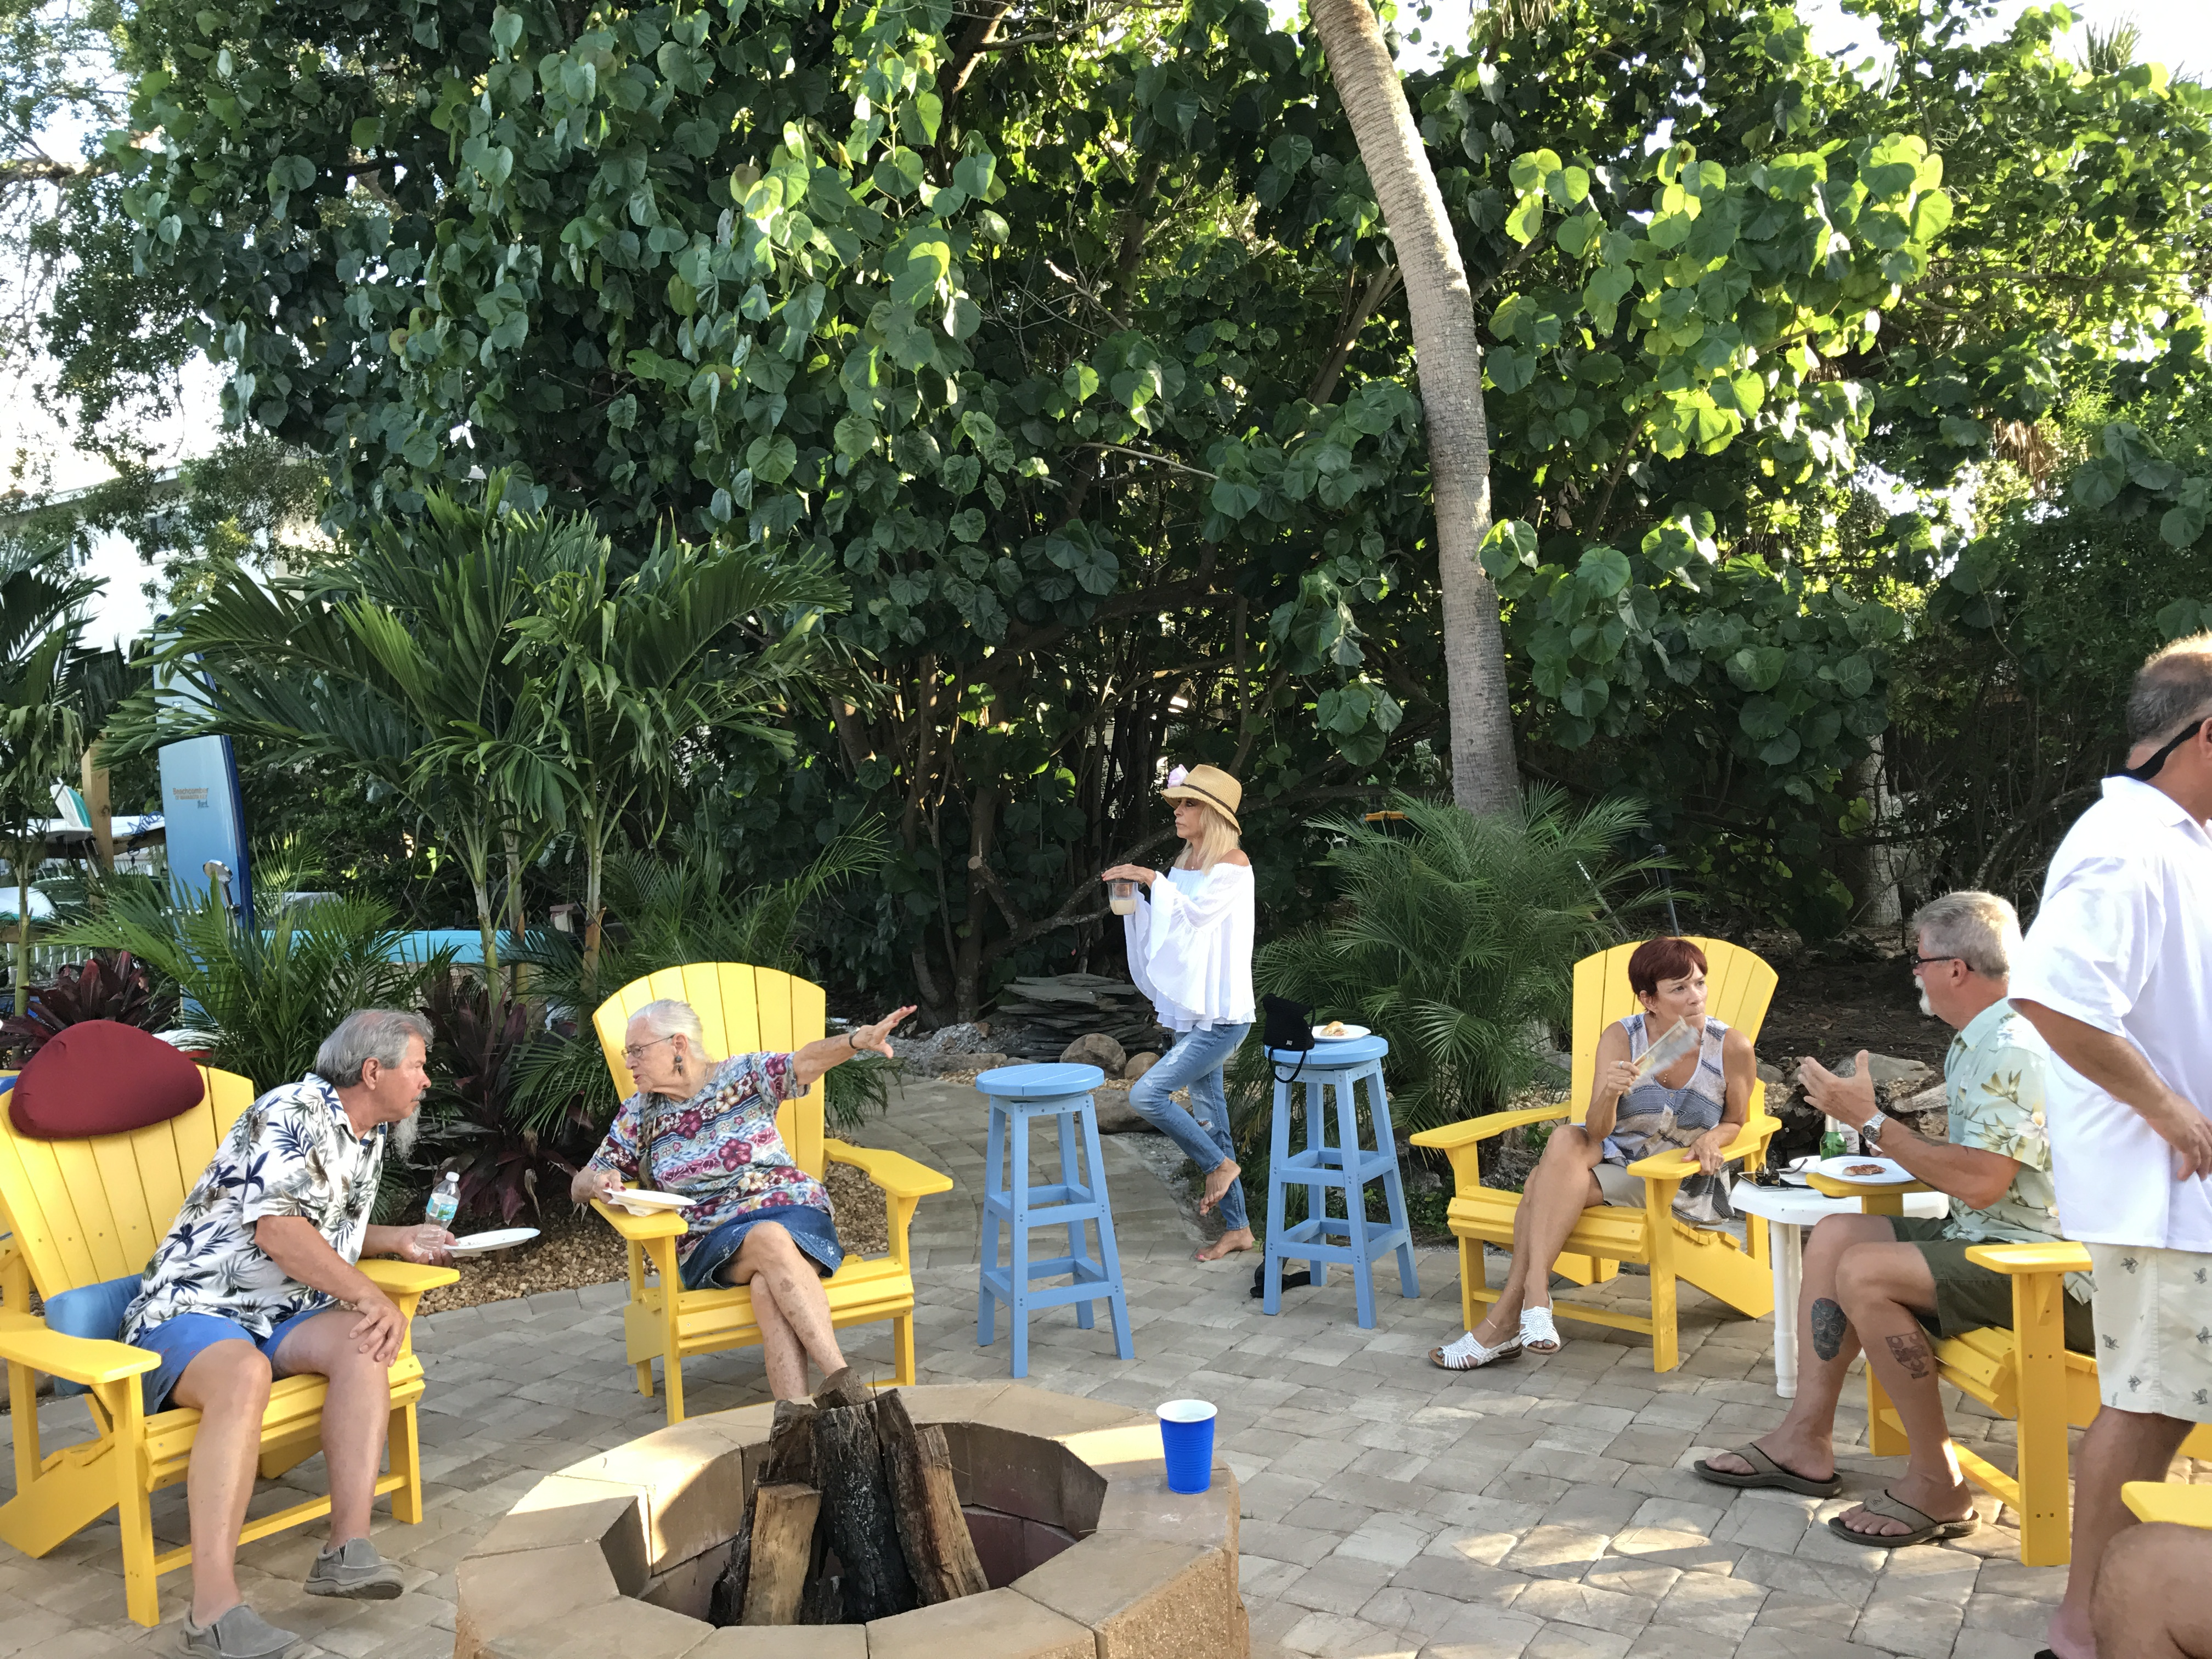 firepit and chairs in Manasota Key